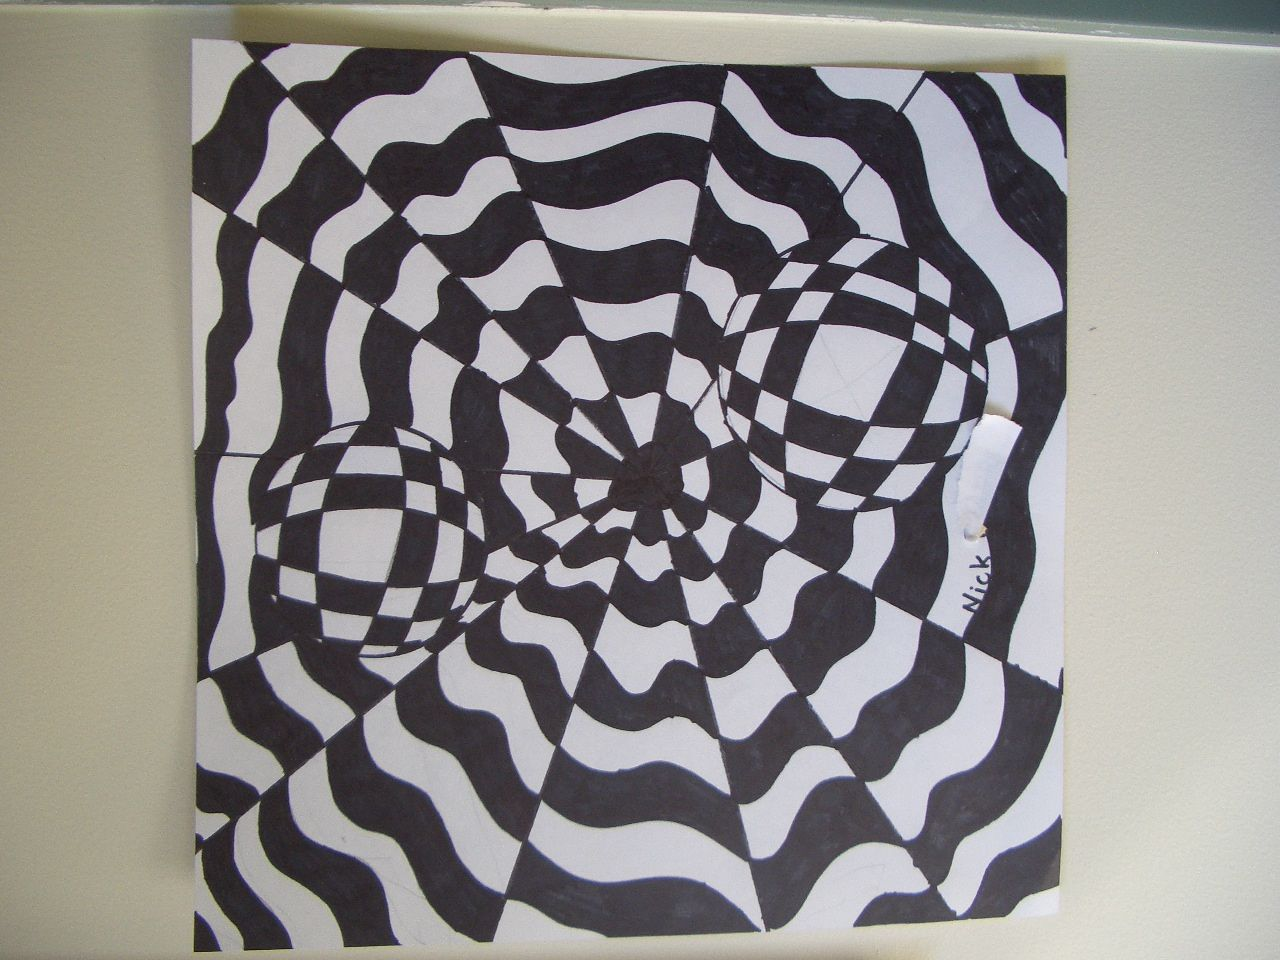 Op art uses color to create - Middle School Art Lessons Dream Draw Create Art Lessons For Children Op Art By